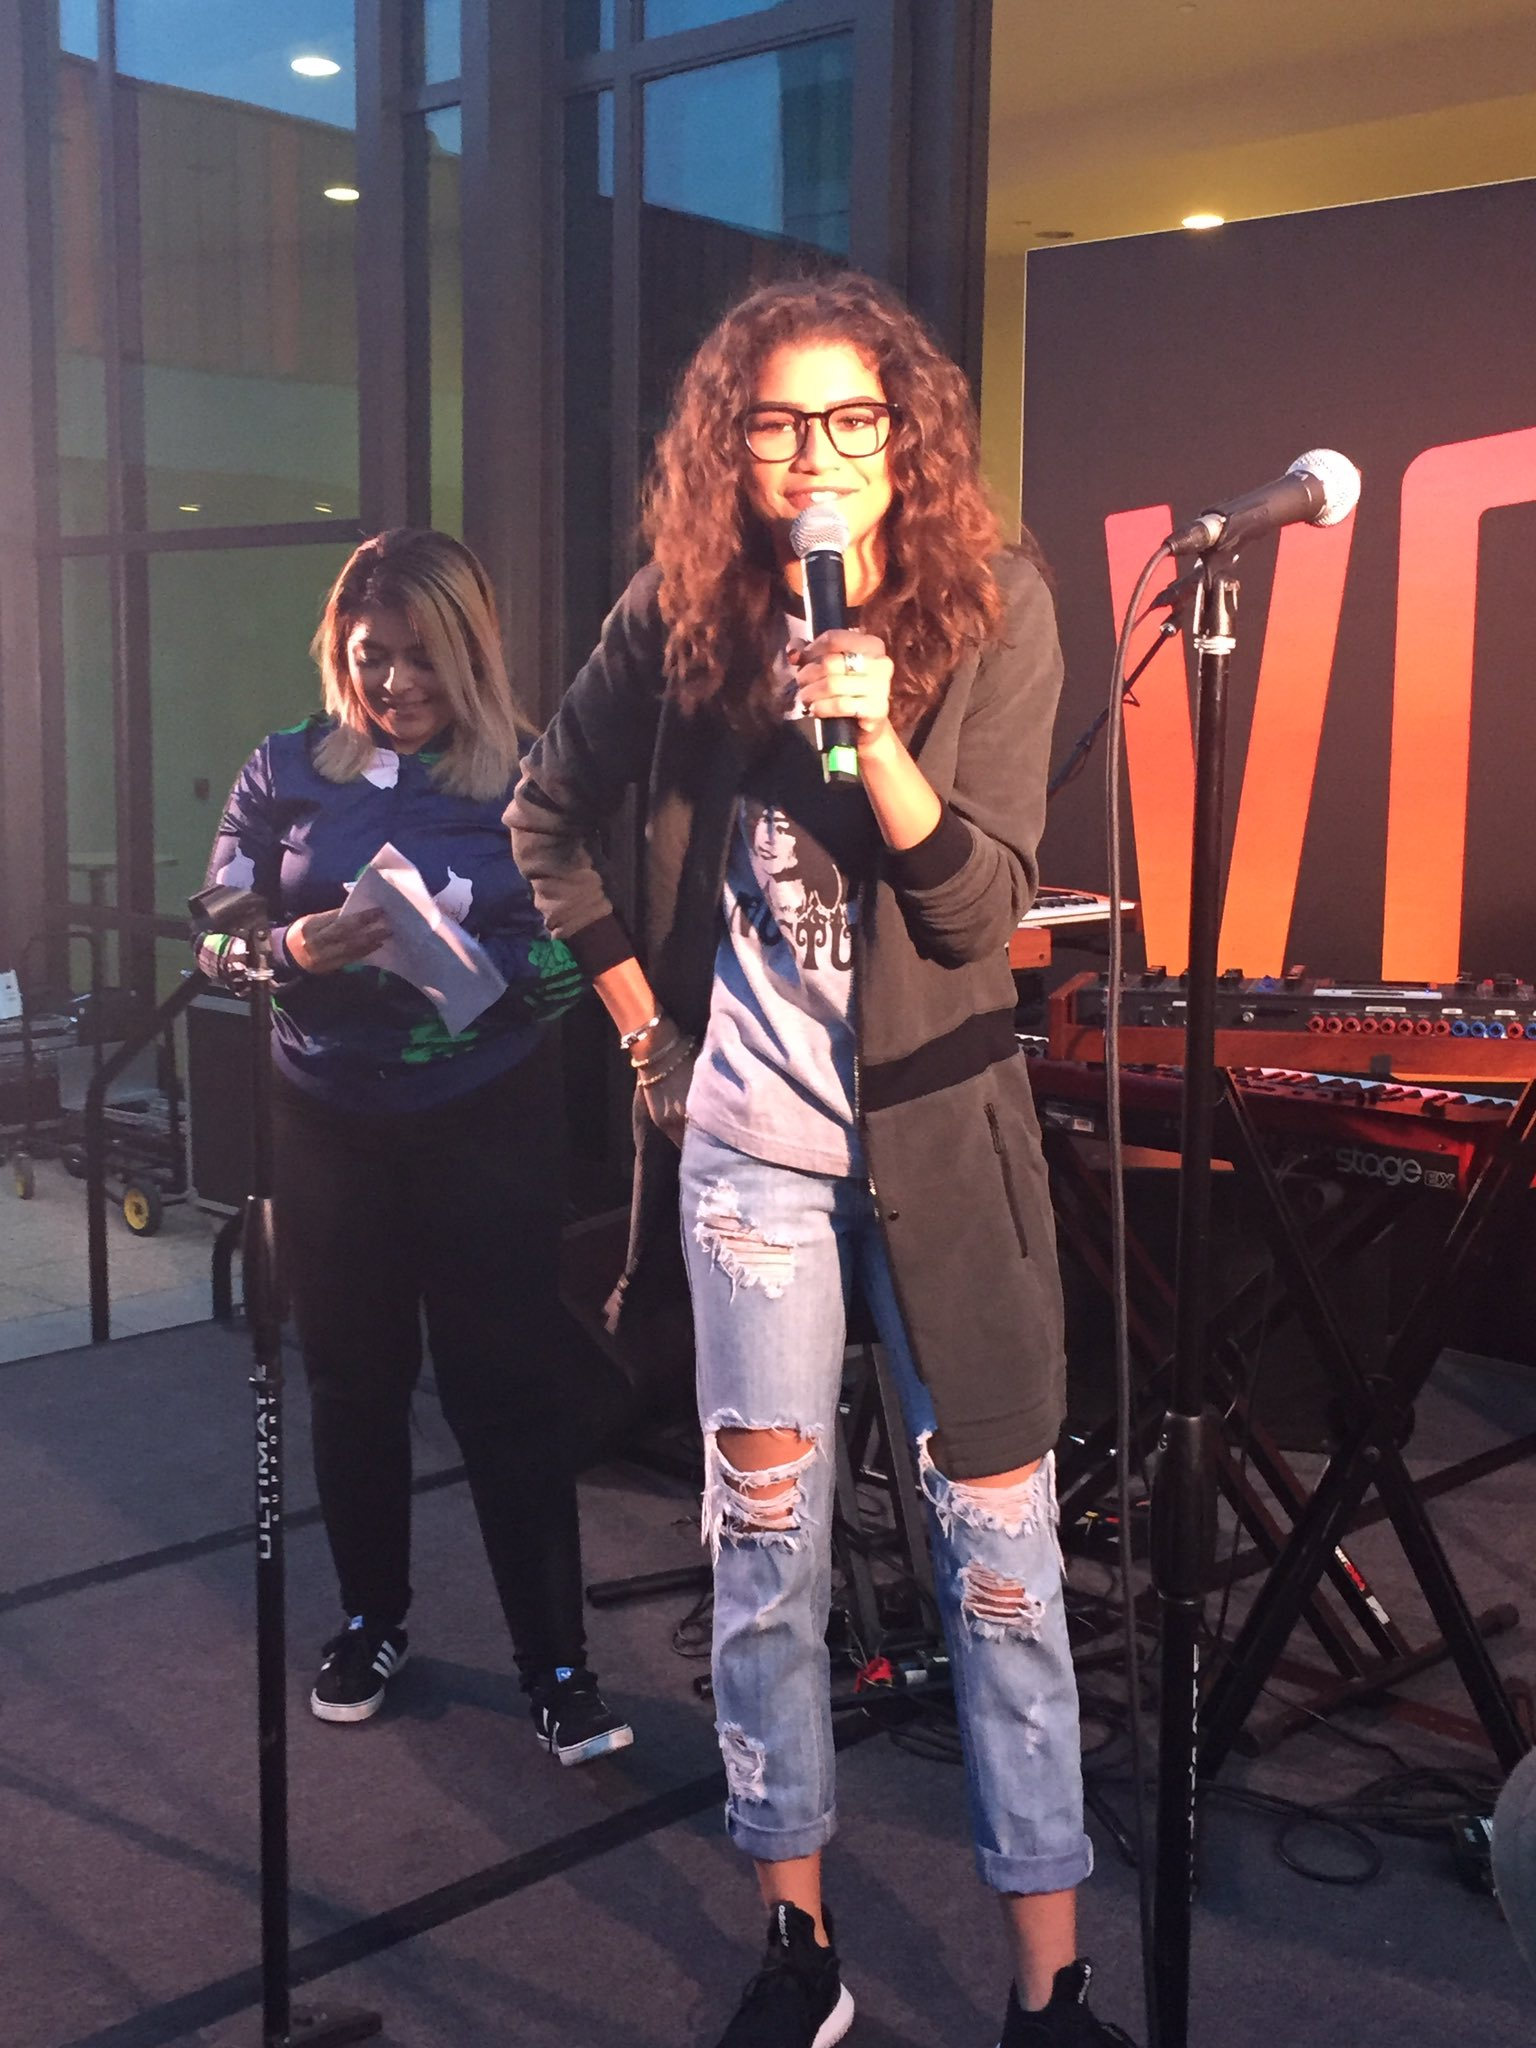 "RT @CalEndow: ""We are so powerful and we need to help each other see that"" -@Zendaya. Youth power is for real! #GetLoud https://t.co/ztKEMl…"